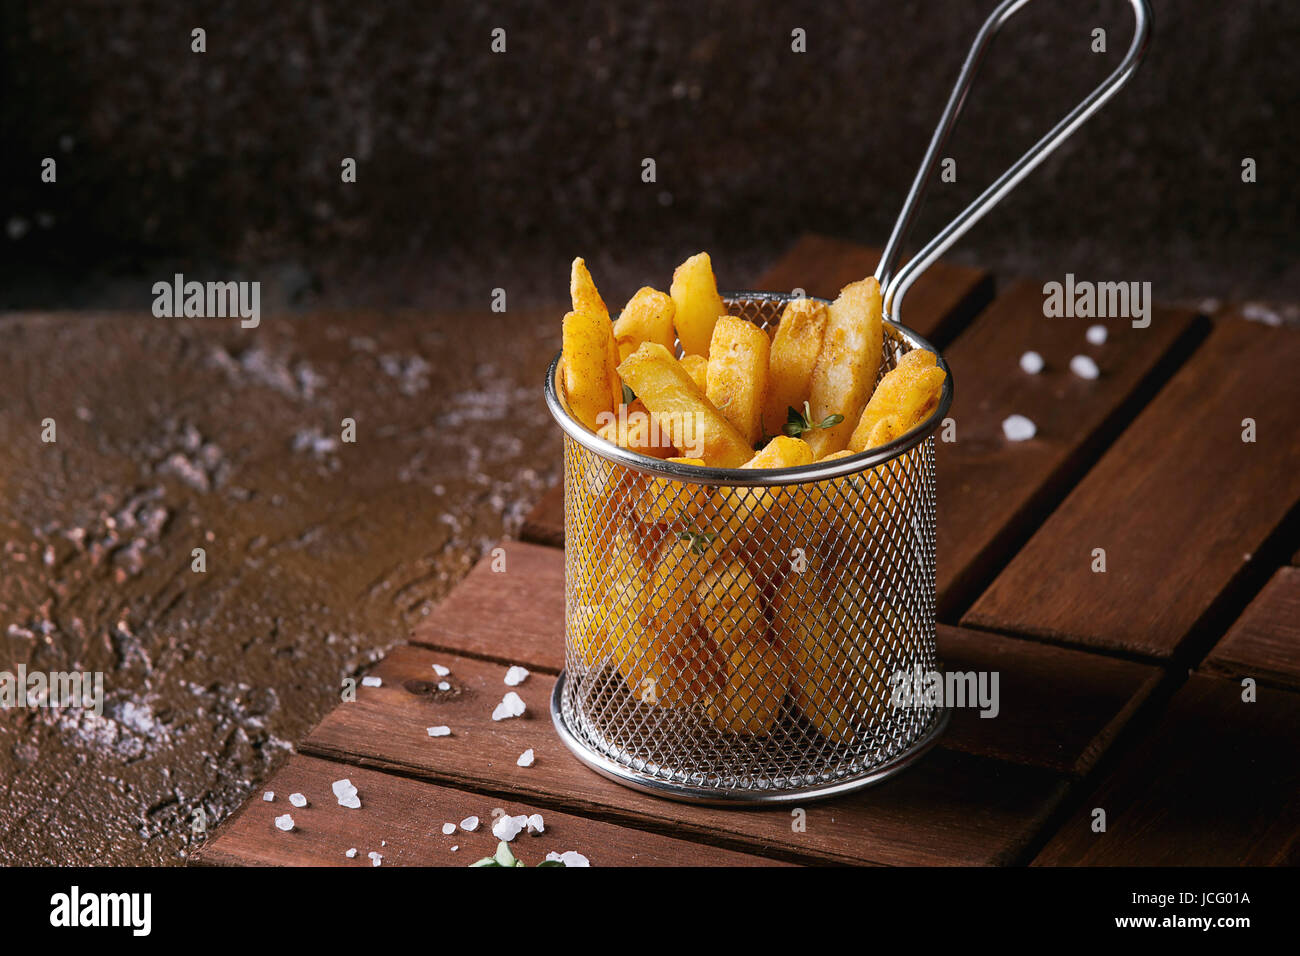 Traditional french fries potatoes served in frying basket with salt, thyme on wooden board over brown texture background. - Stock Image